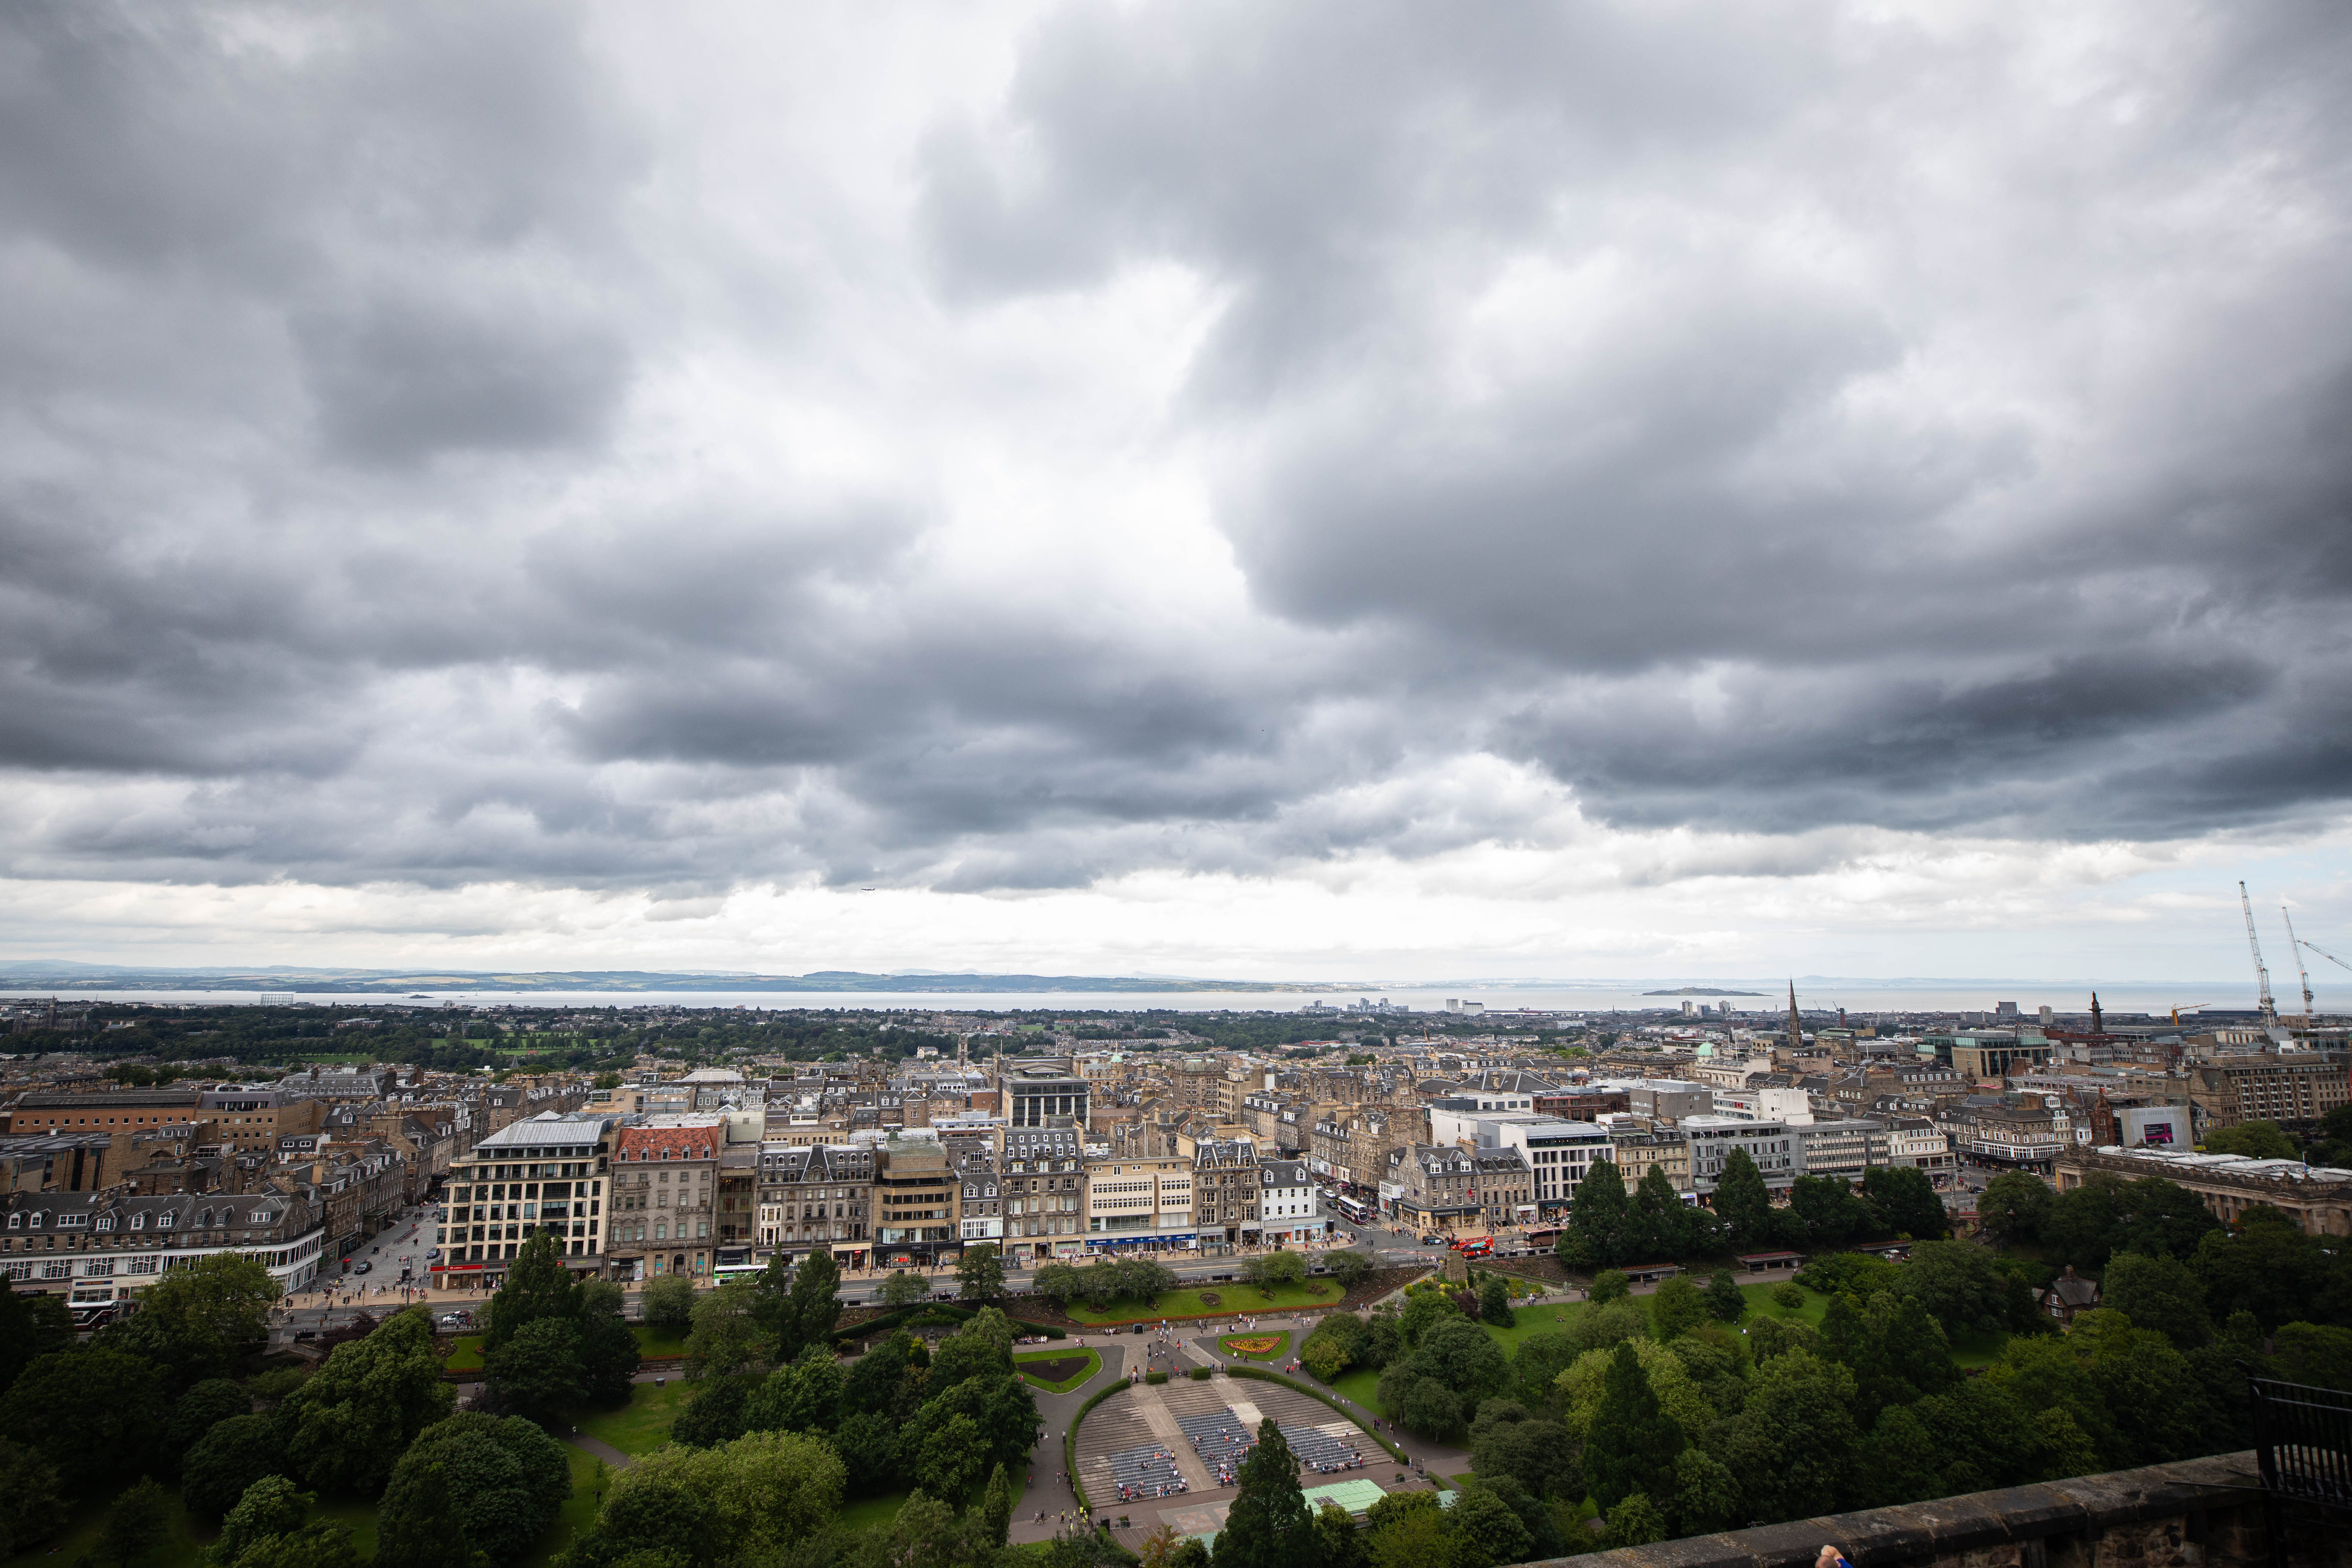 View from Edinburgh Castle Scotland's Most Beautiful Castles Scotland's Capital City Incredible Architecture Things to do in Edinburgh by Annie Fairfax @AnnieFairfax